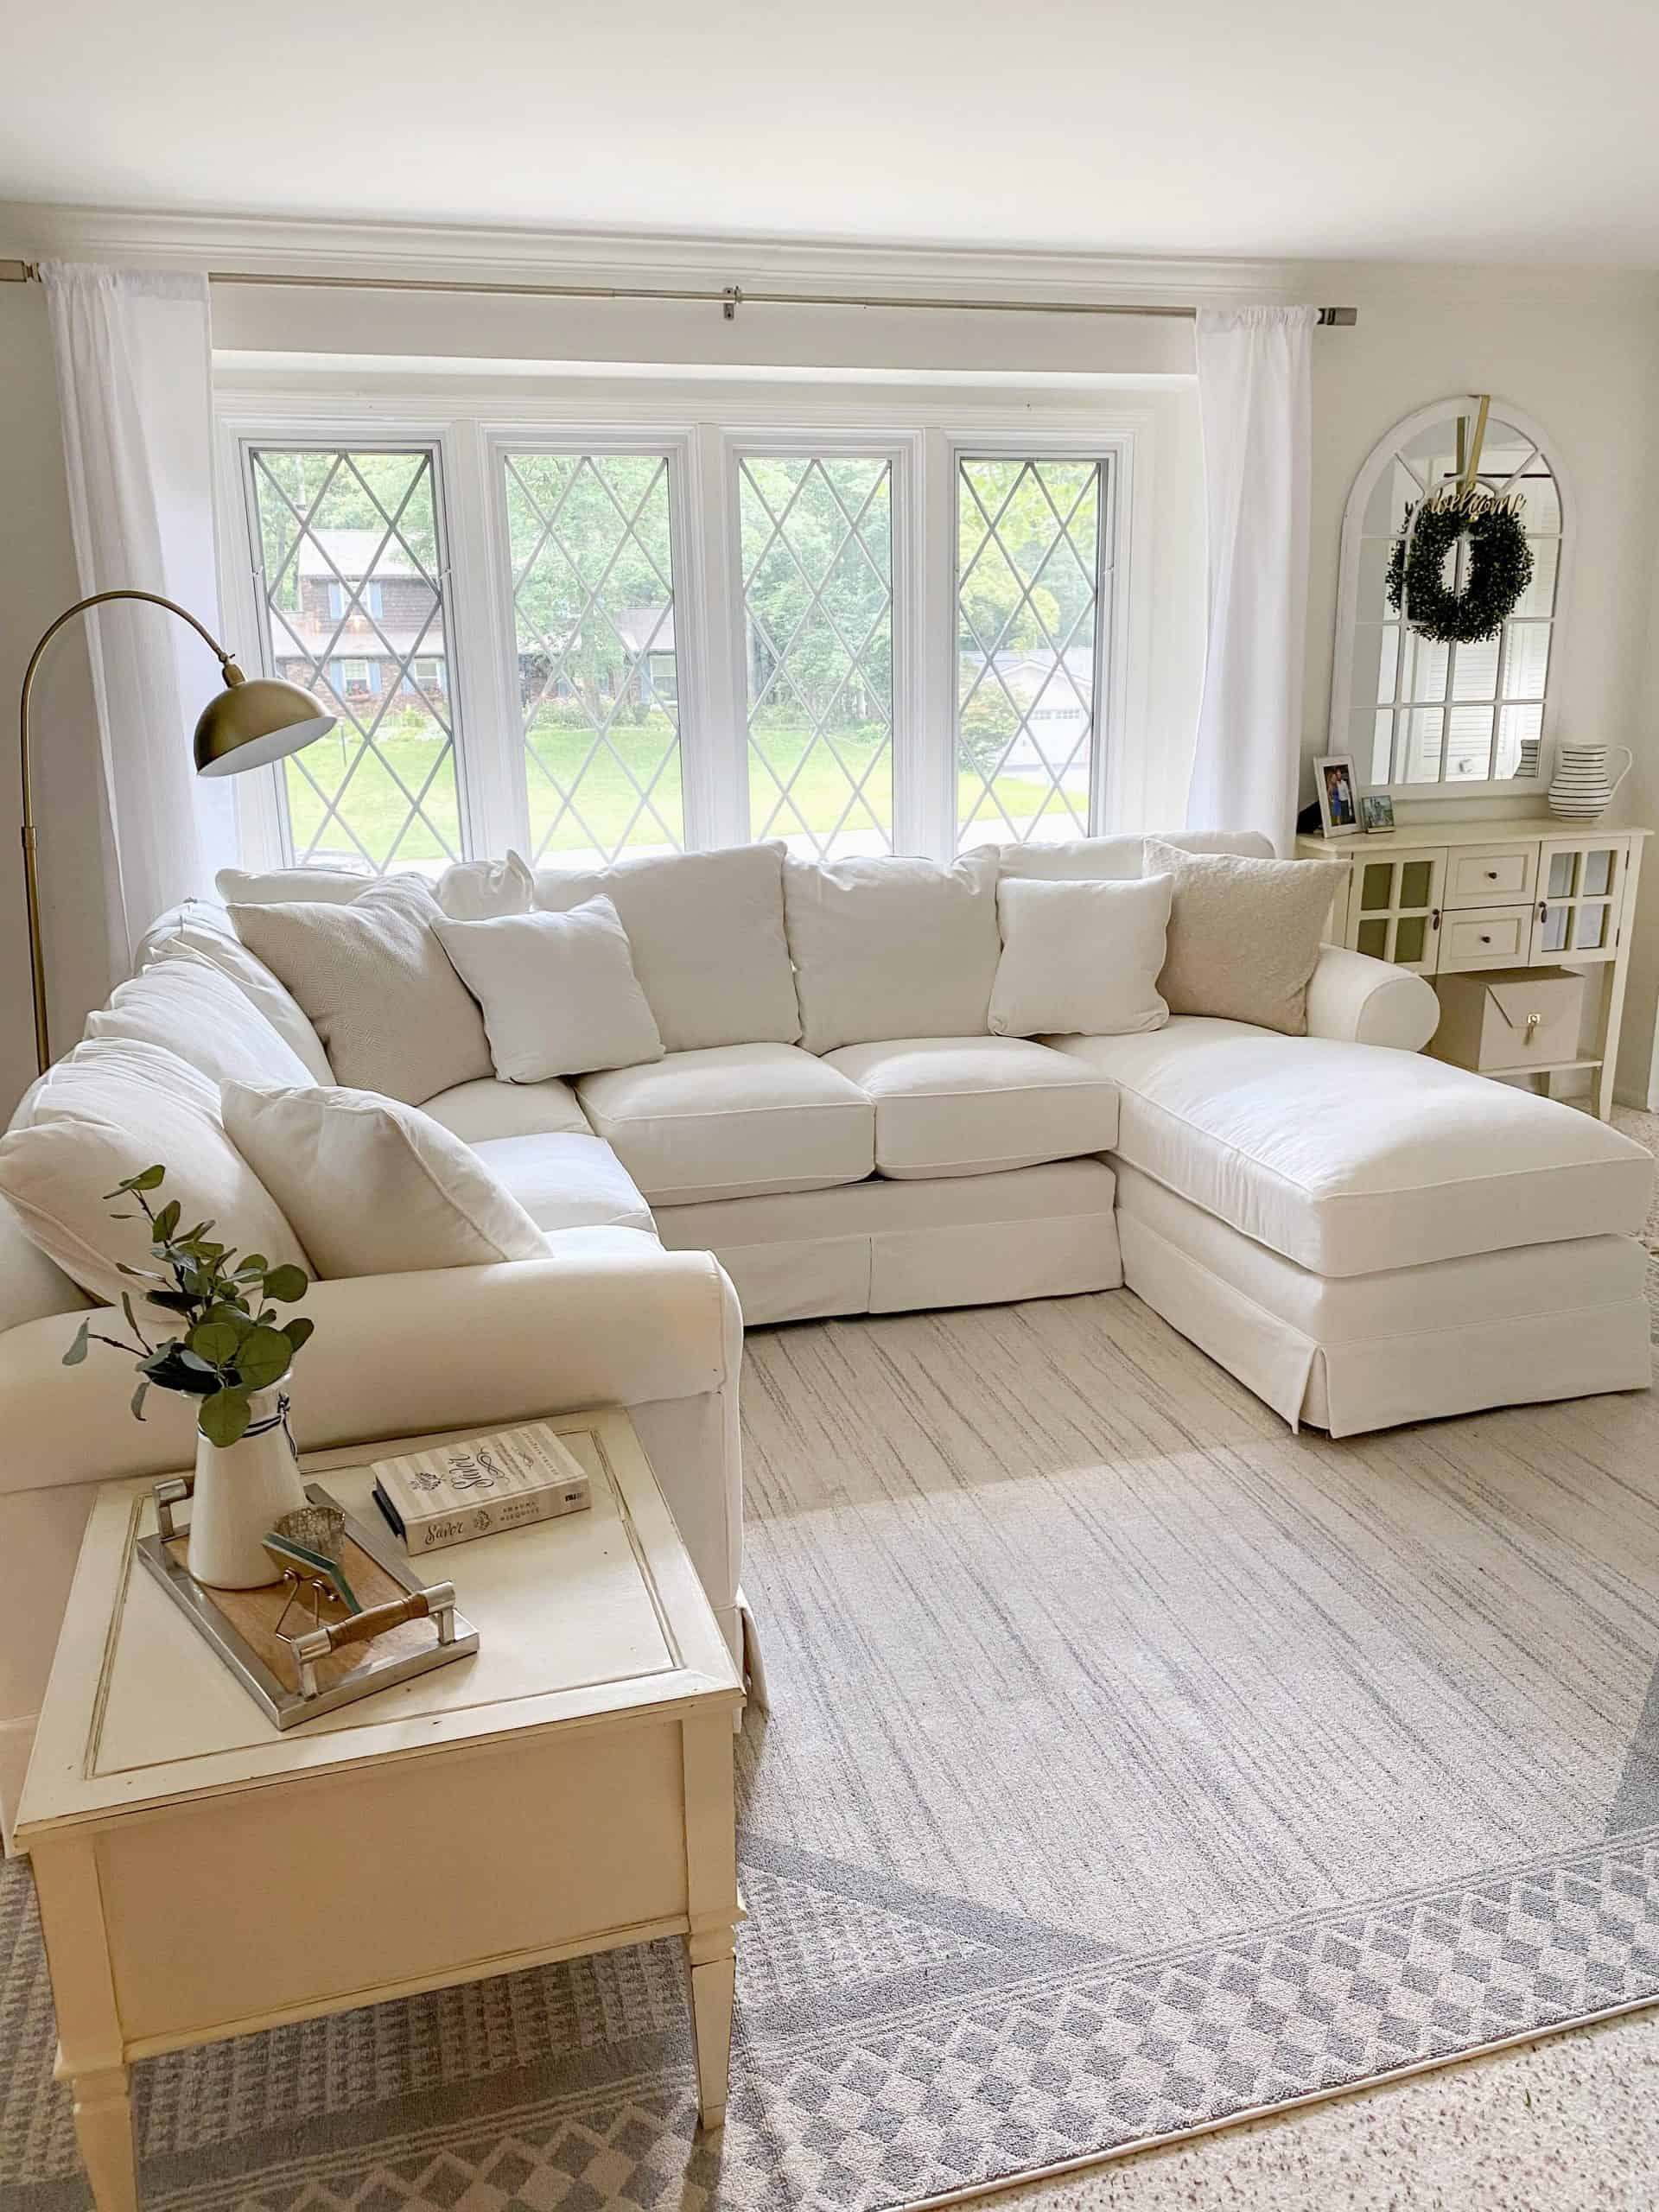 9 Stunning Coastal Paint Colors For Your Home featured by top MI lifestyle blogger, House of Navy: white living room paint inspiration